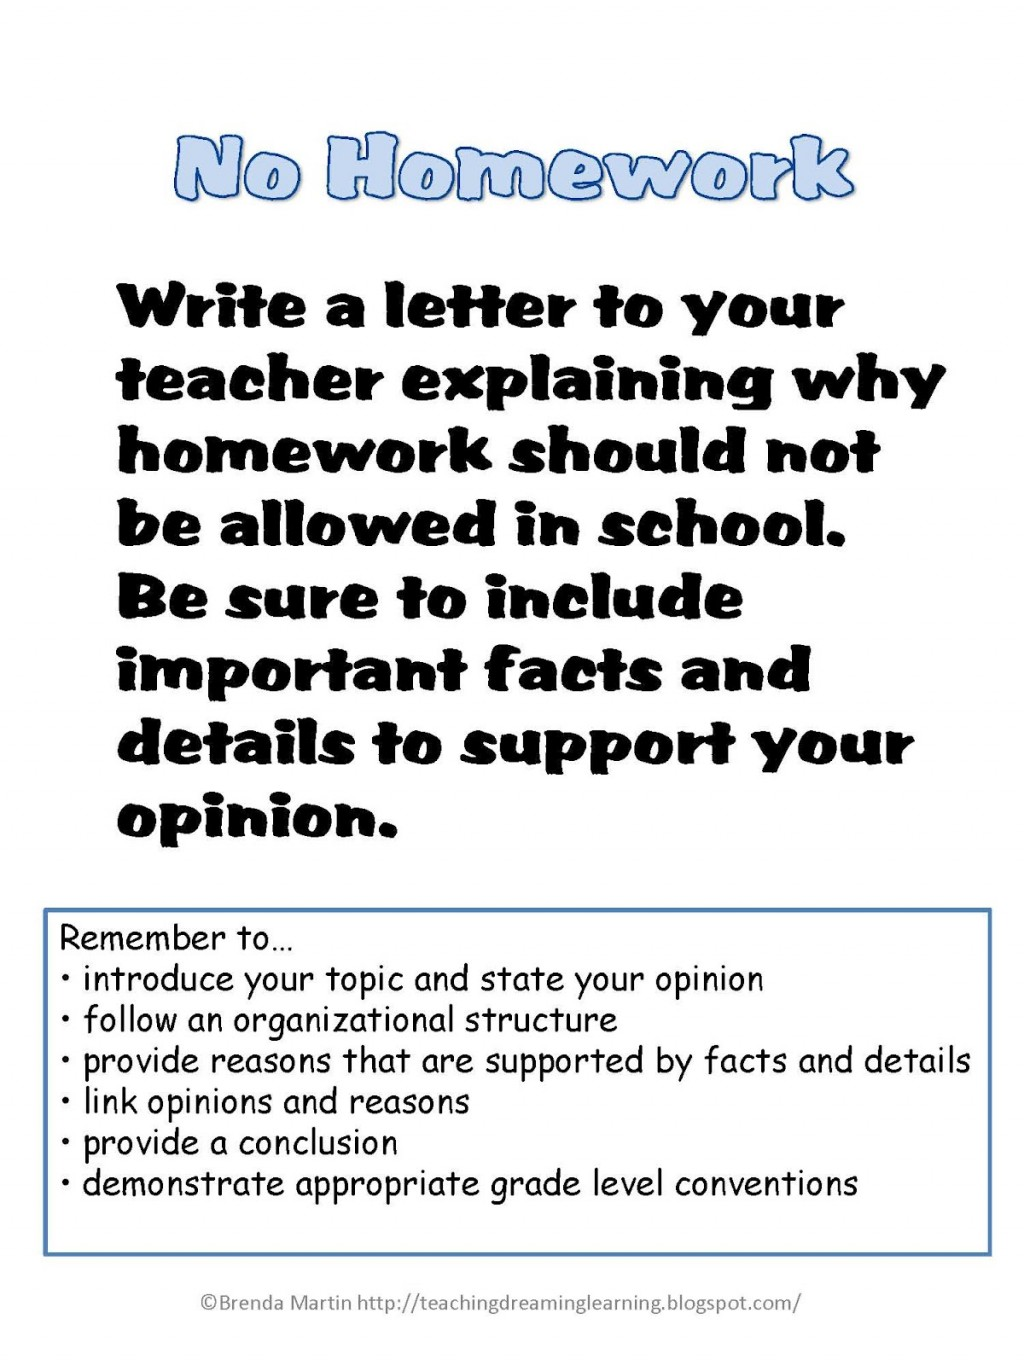 003 Essay Example Persuasive For Sixth Grade Custom Paper Service Ruhomeworkkofd Topics Students Writing1 Pa Argumentative 6th Graders Speech Surprising Reflective Narrative Writing Prompts Science Large